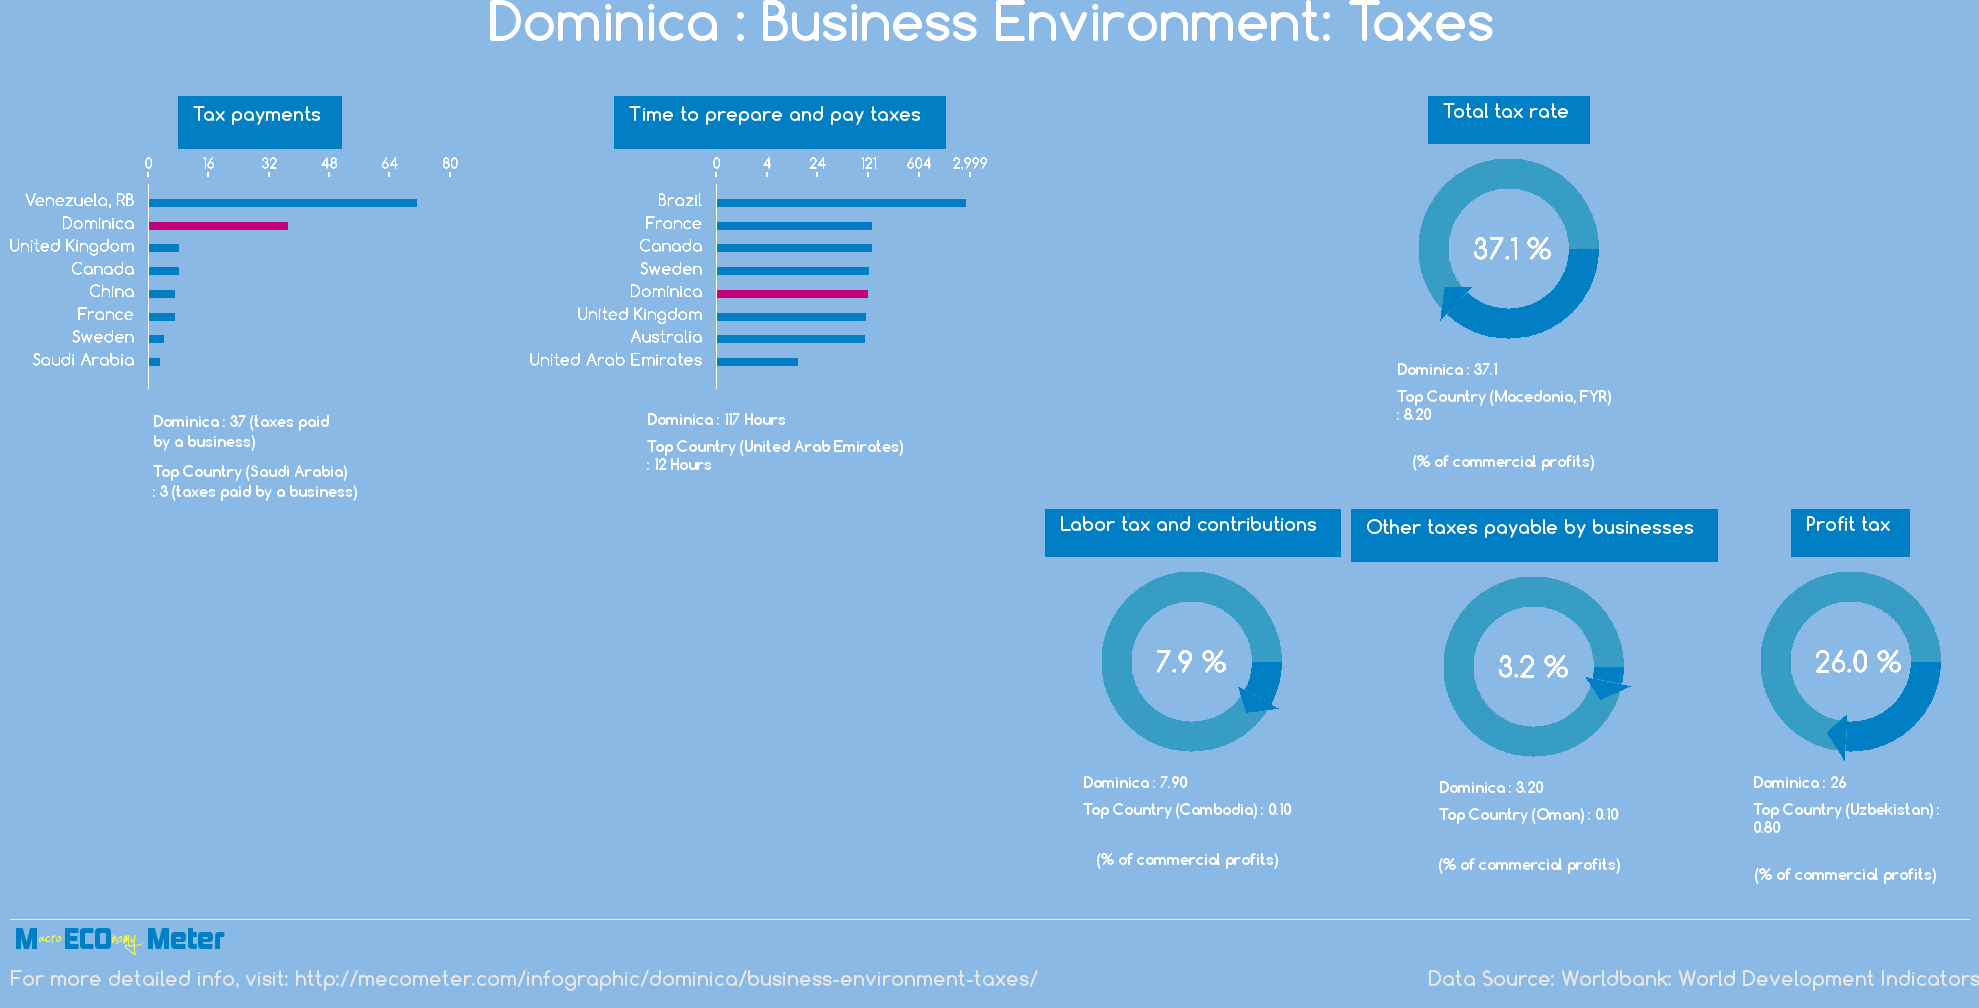 Dominica : Business Environment: Taxes